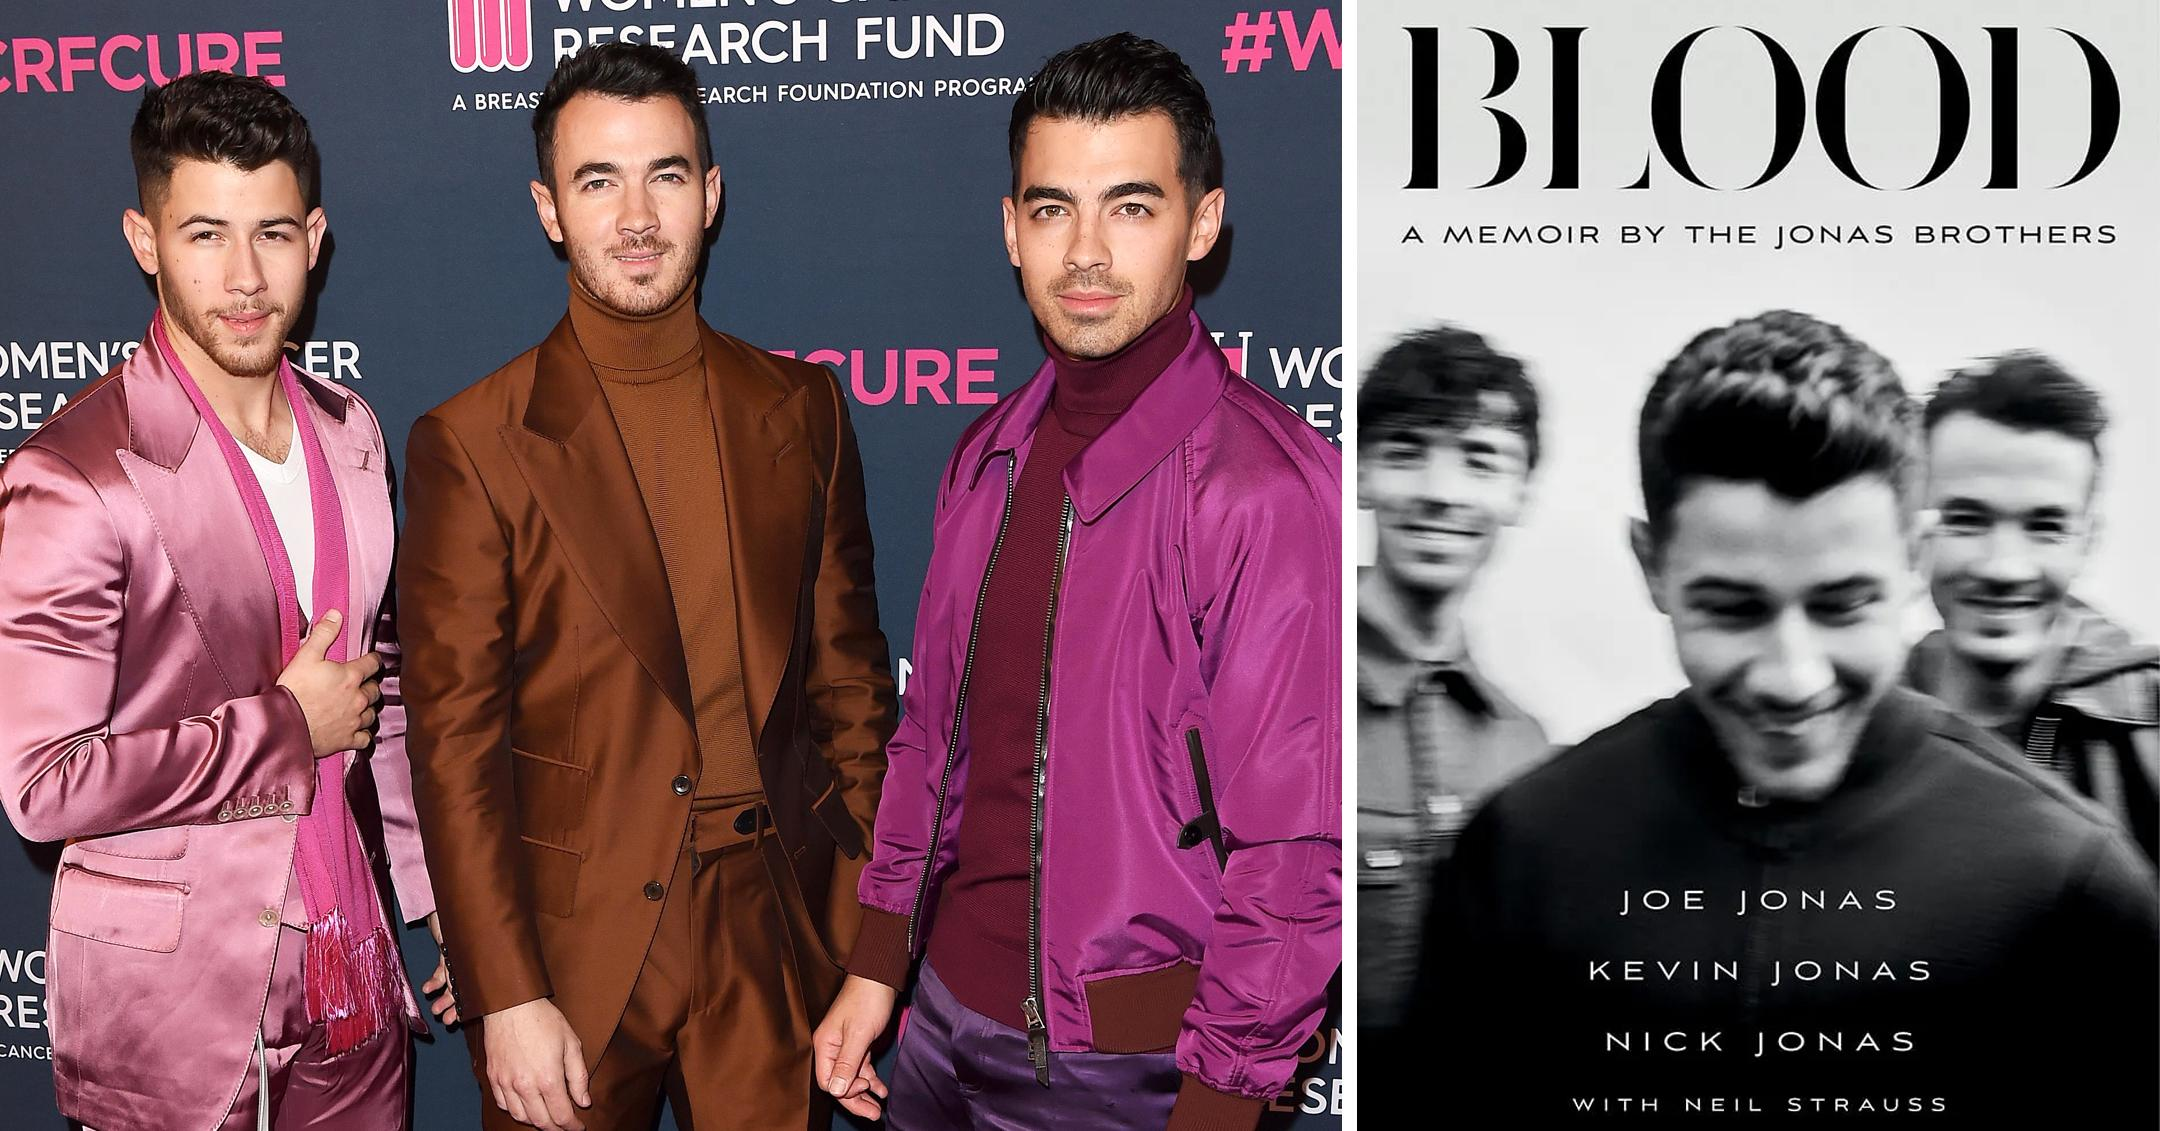 jonas brothers memoir blood will be out this fall